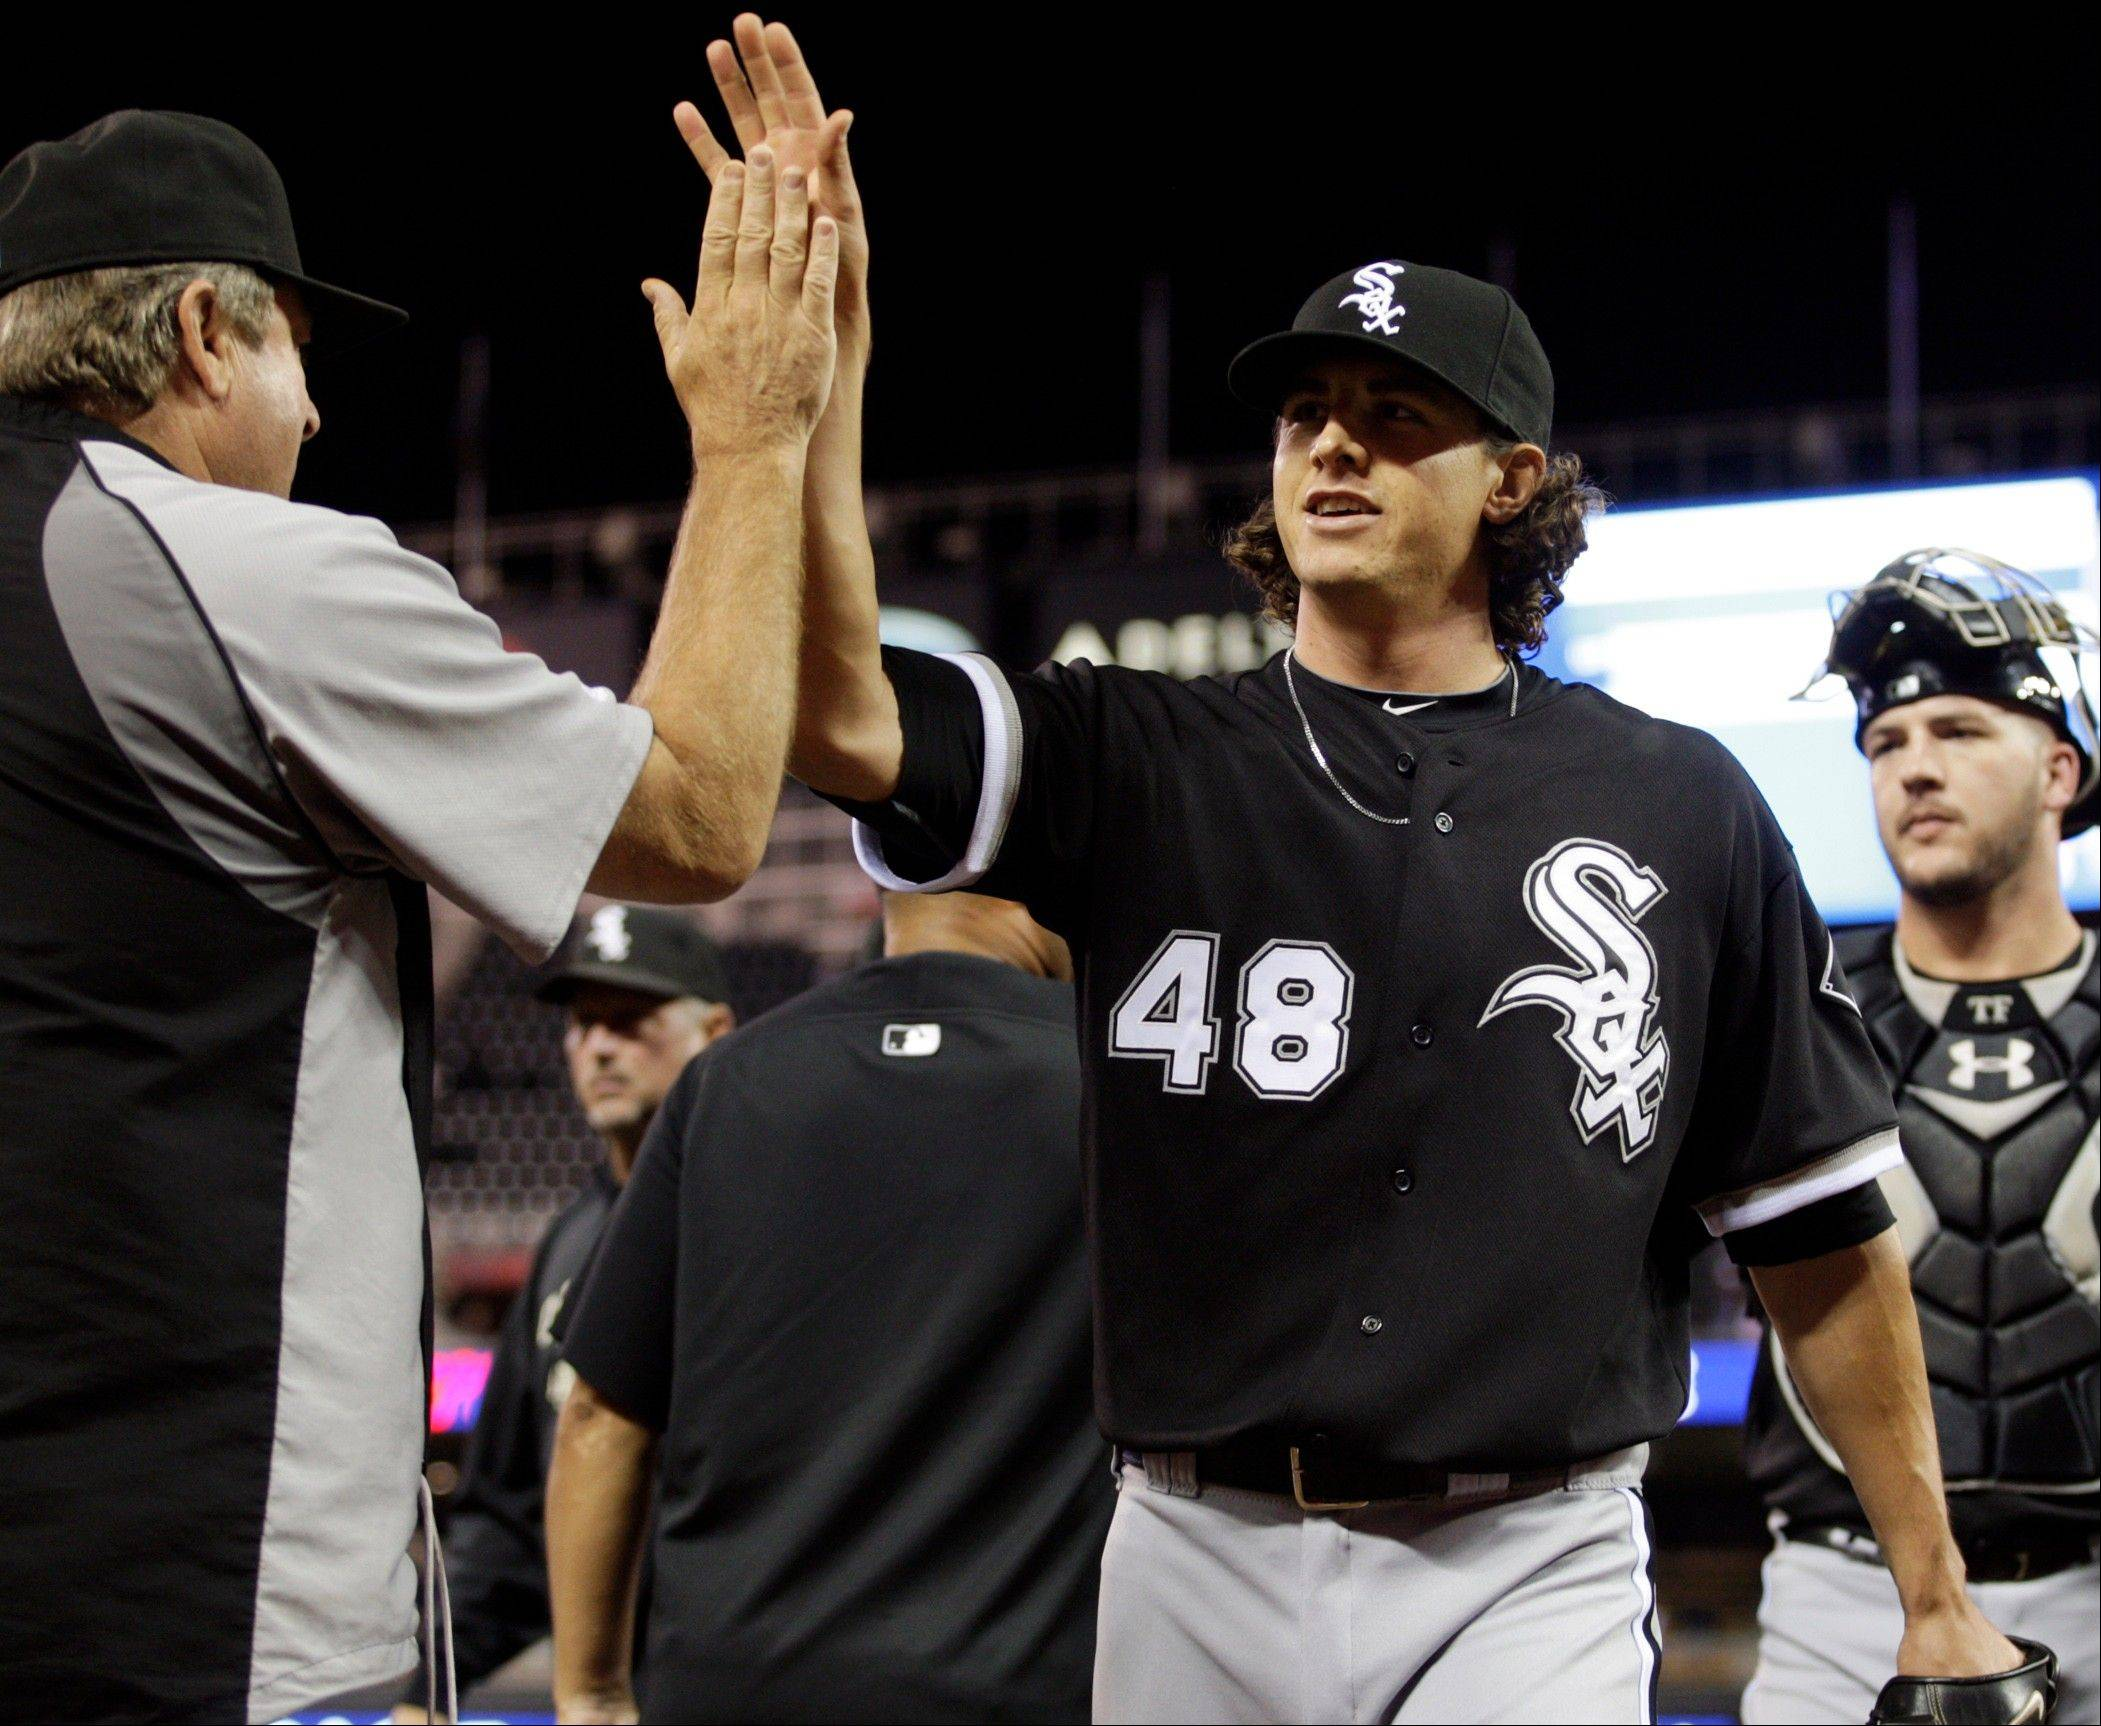 White Sox starter Zach Stewart is congratulated after his 1-hitter Monday night.